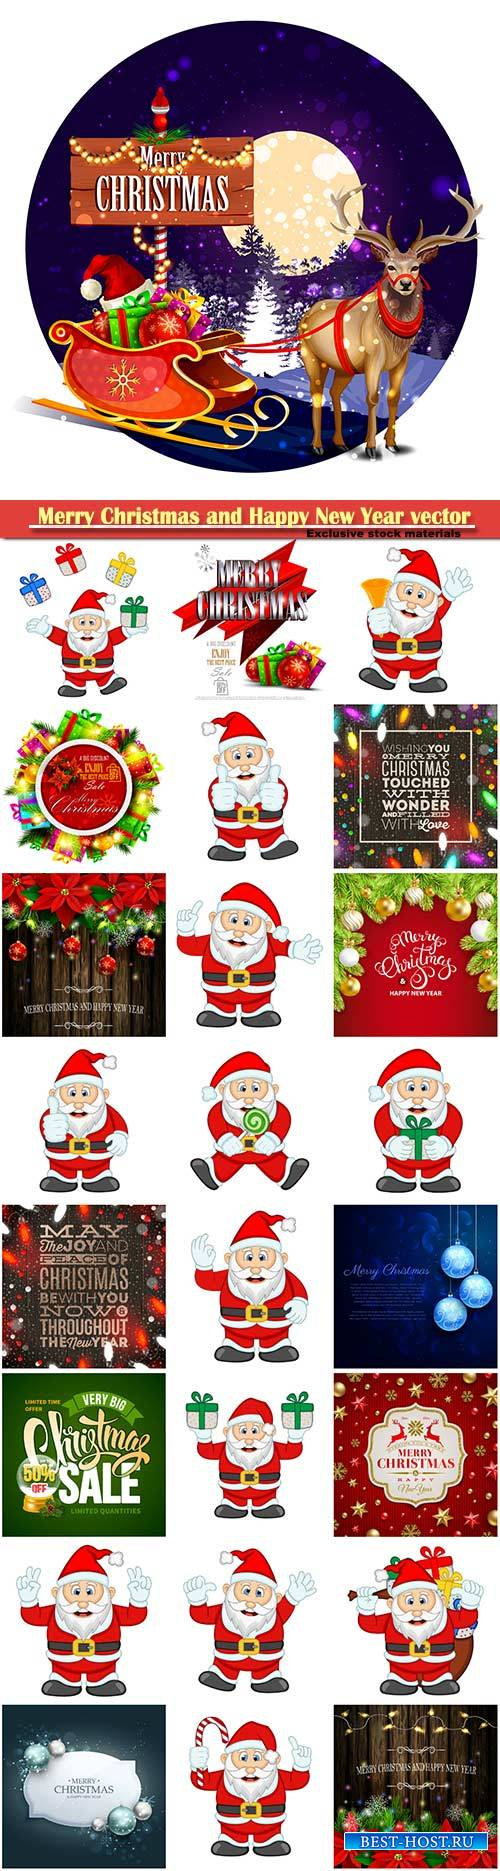 Merry Christmas and Happy New Year vector design # 34